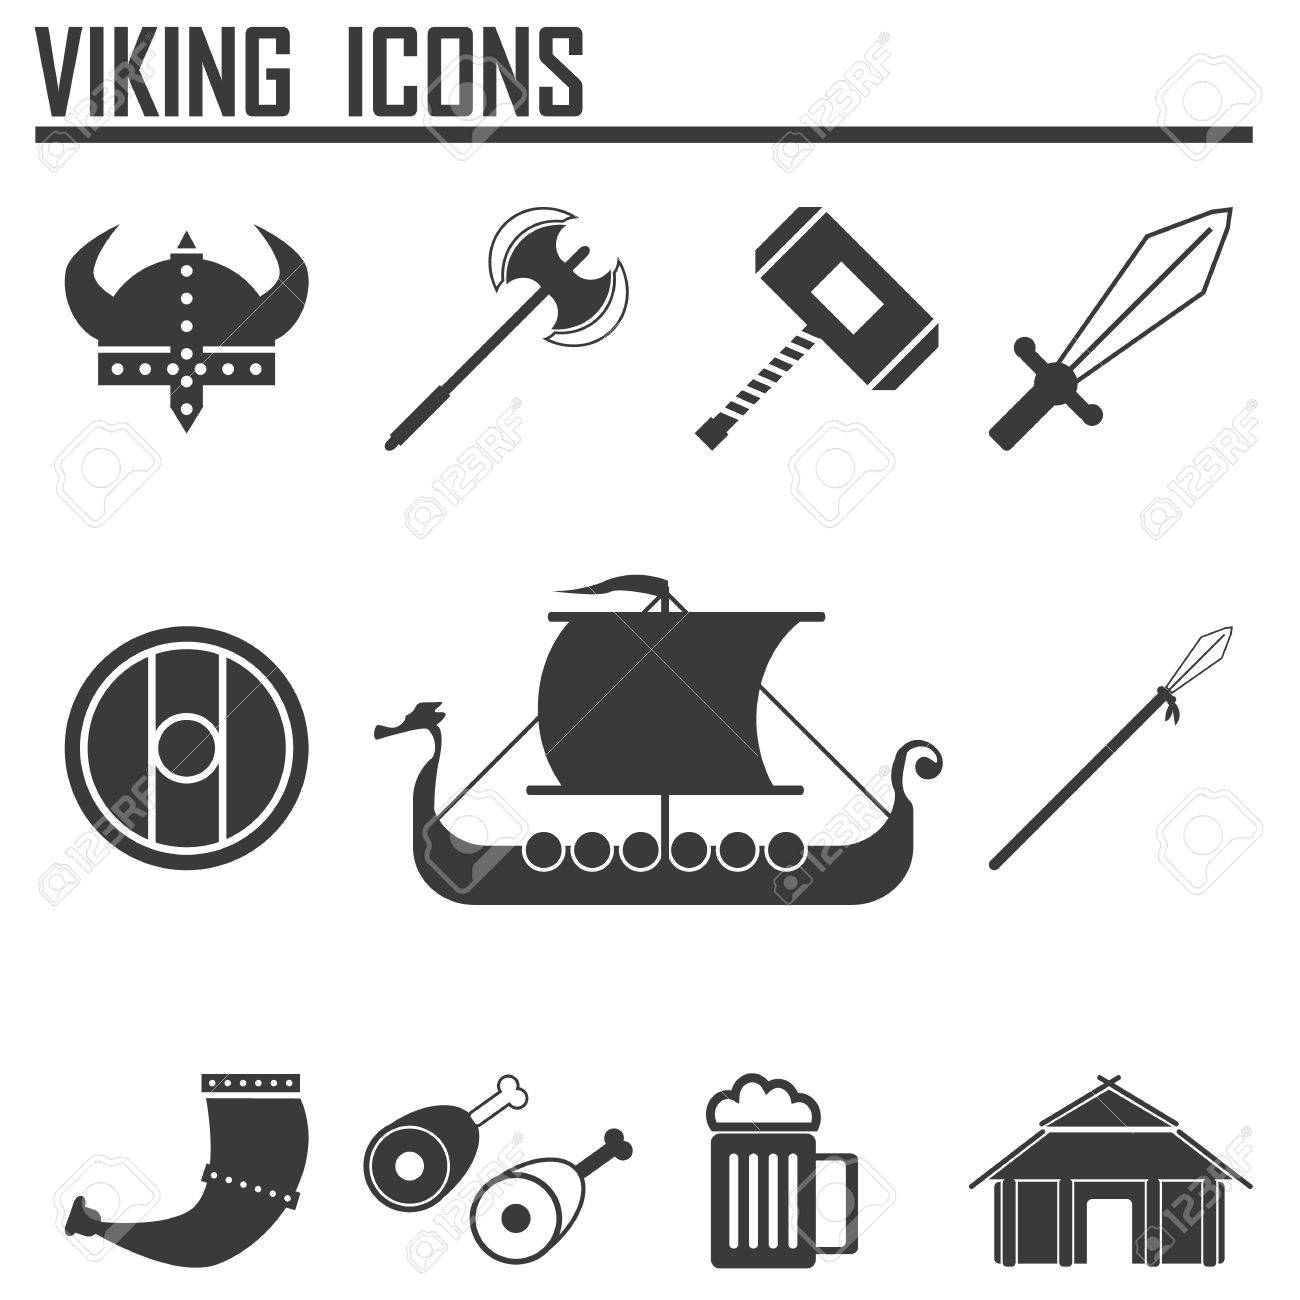 Vikings And Scandinavian Items The Food Weapons Flat Icon Set Royalty Free Cliparts Vectors And Stock Illustration Image 35793331